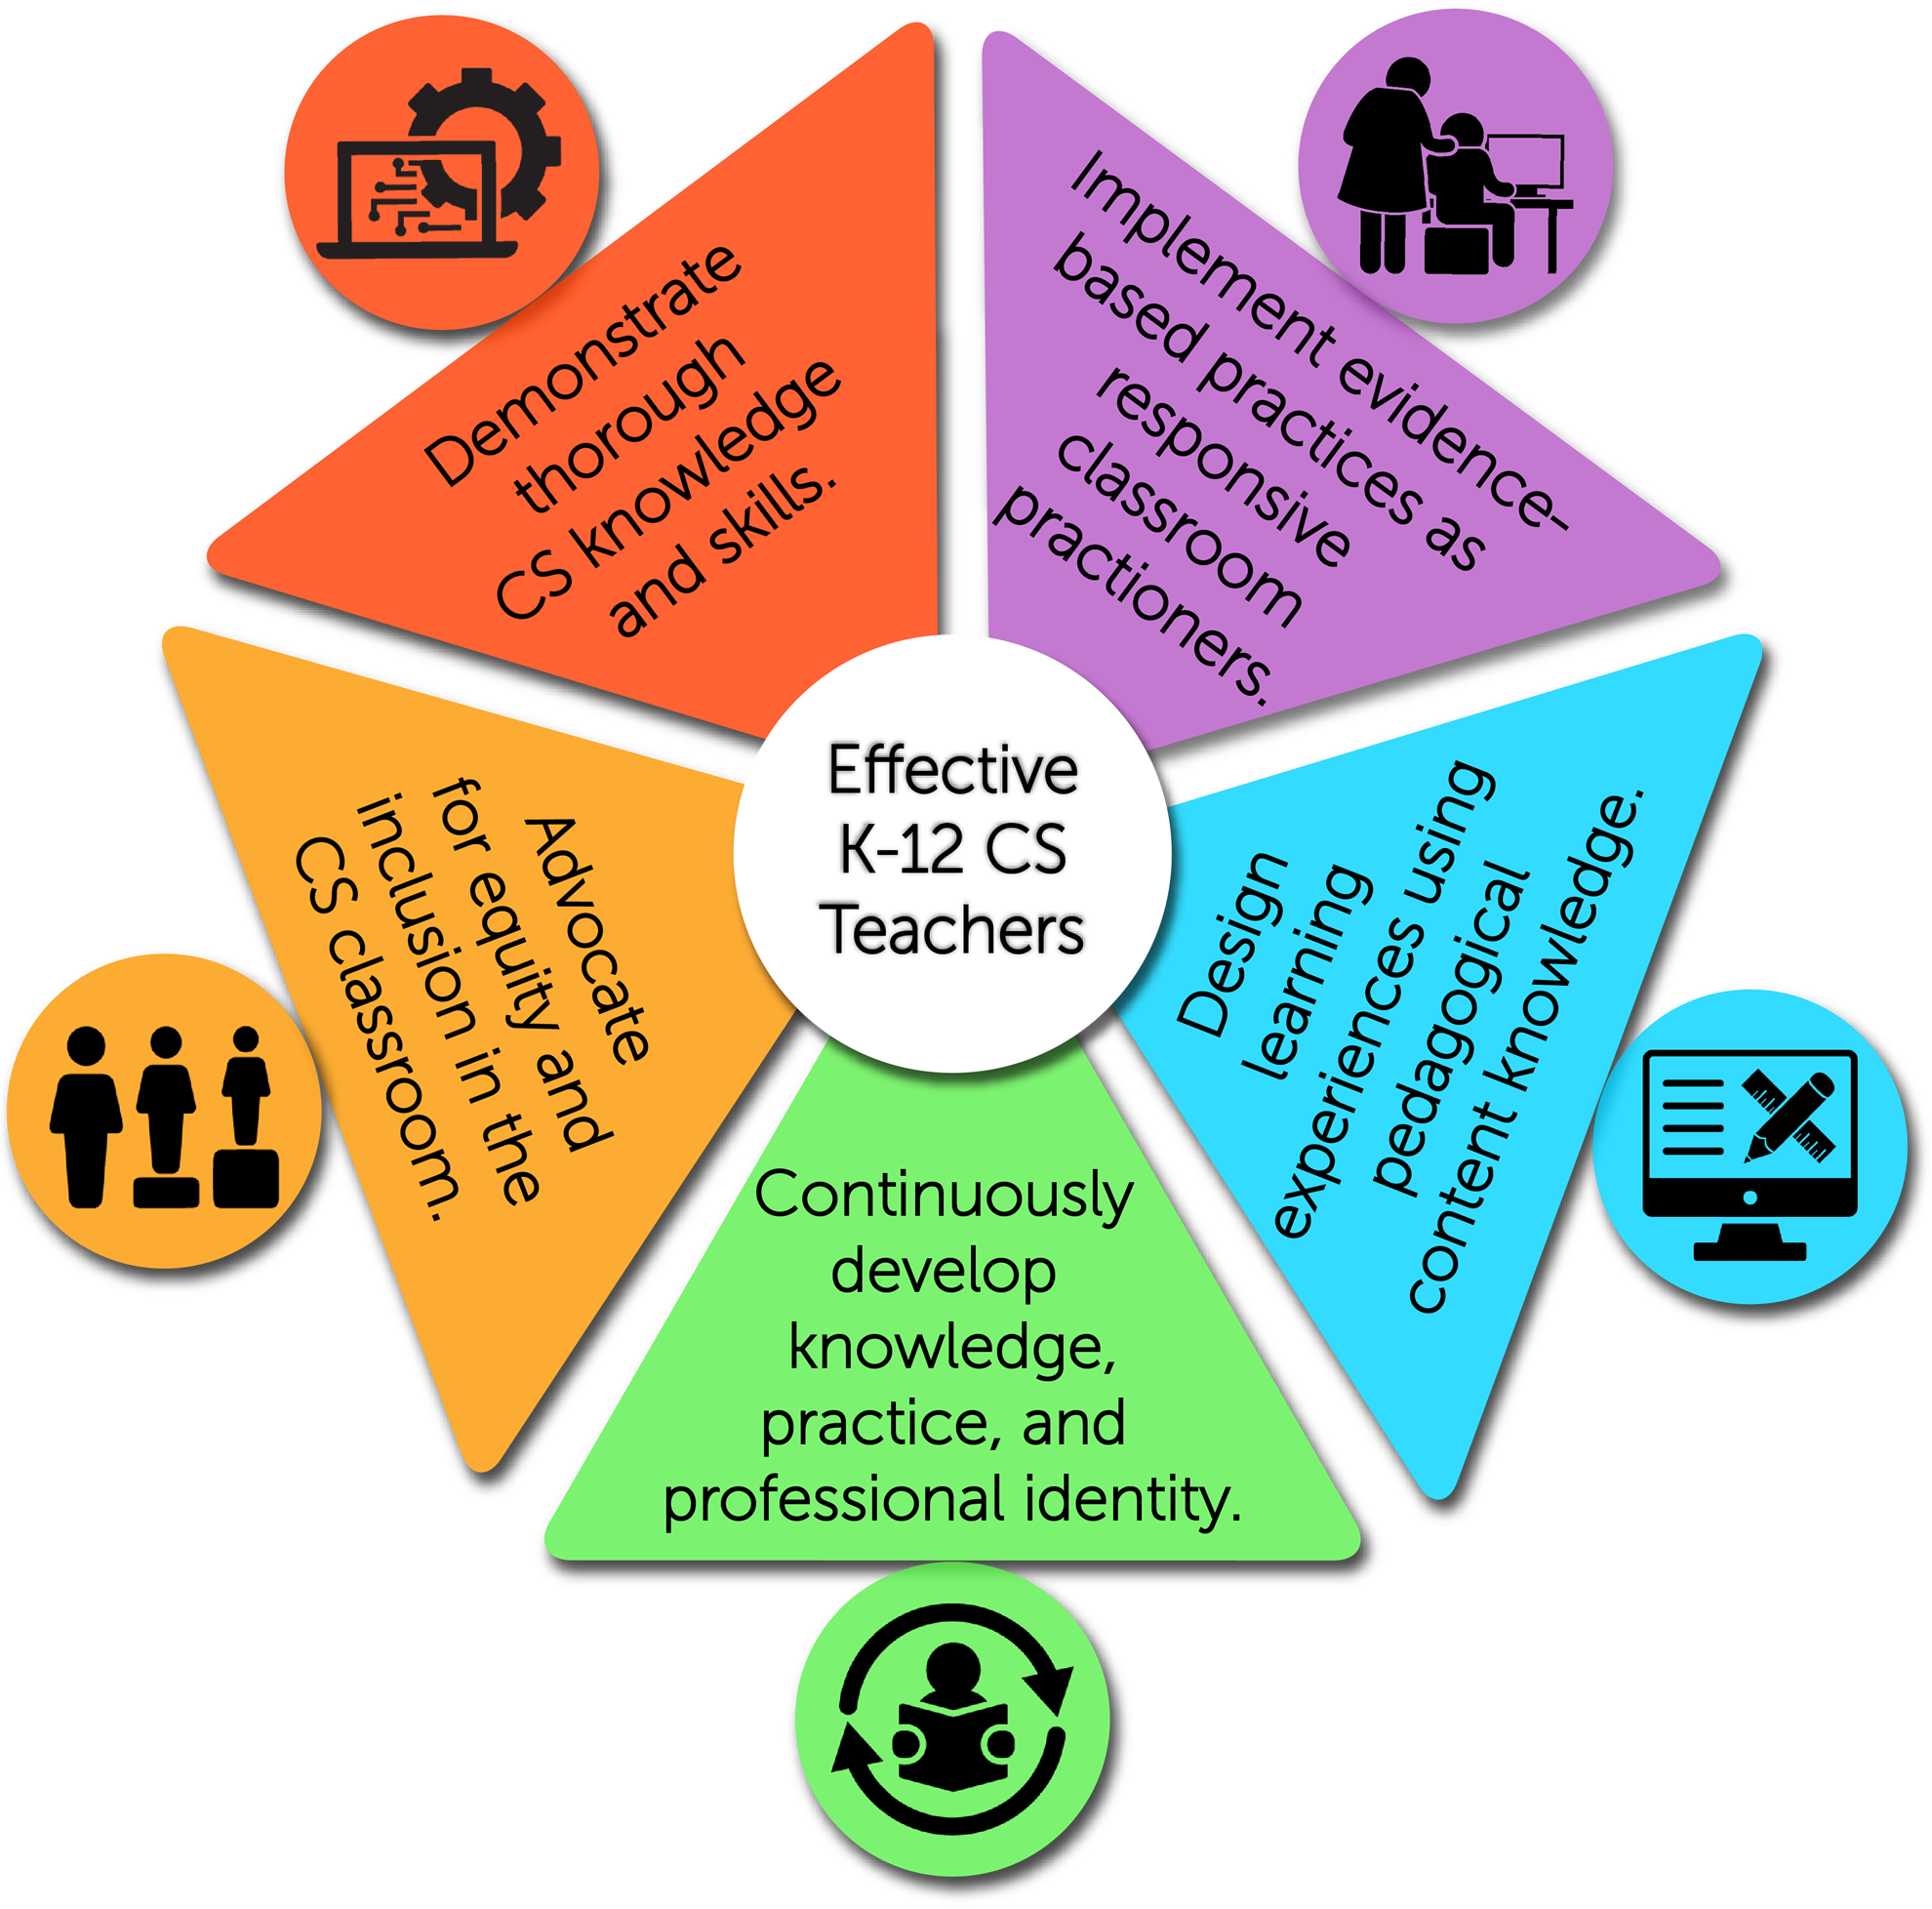 CS Educator standards cover 5 areas: demonstrate CS knowledge and skills, implement them in the classroom, design lessons with good pedagogy, continuously learn, advocate for equity and inclusion